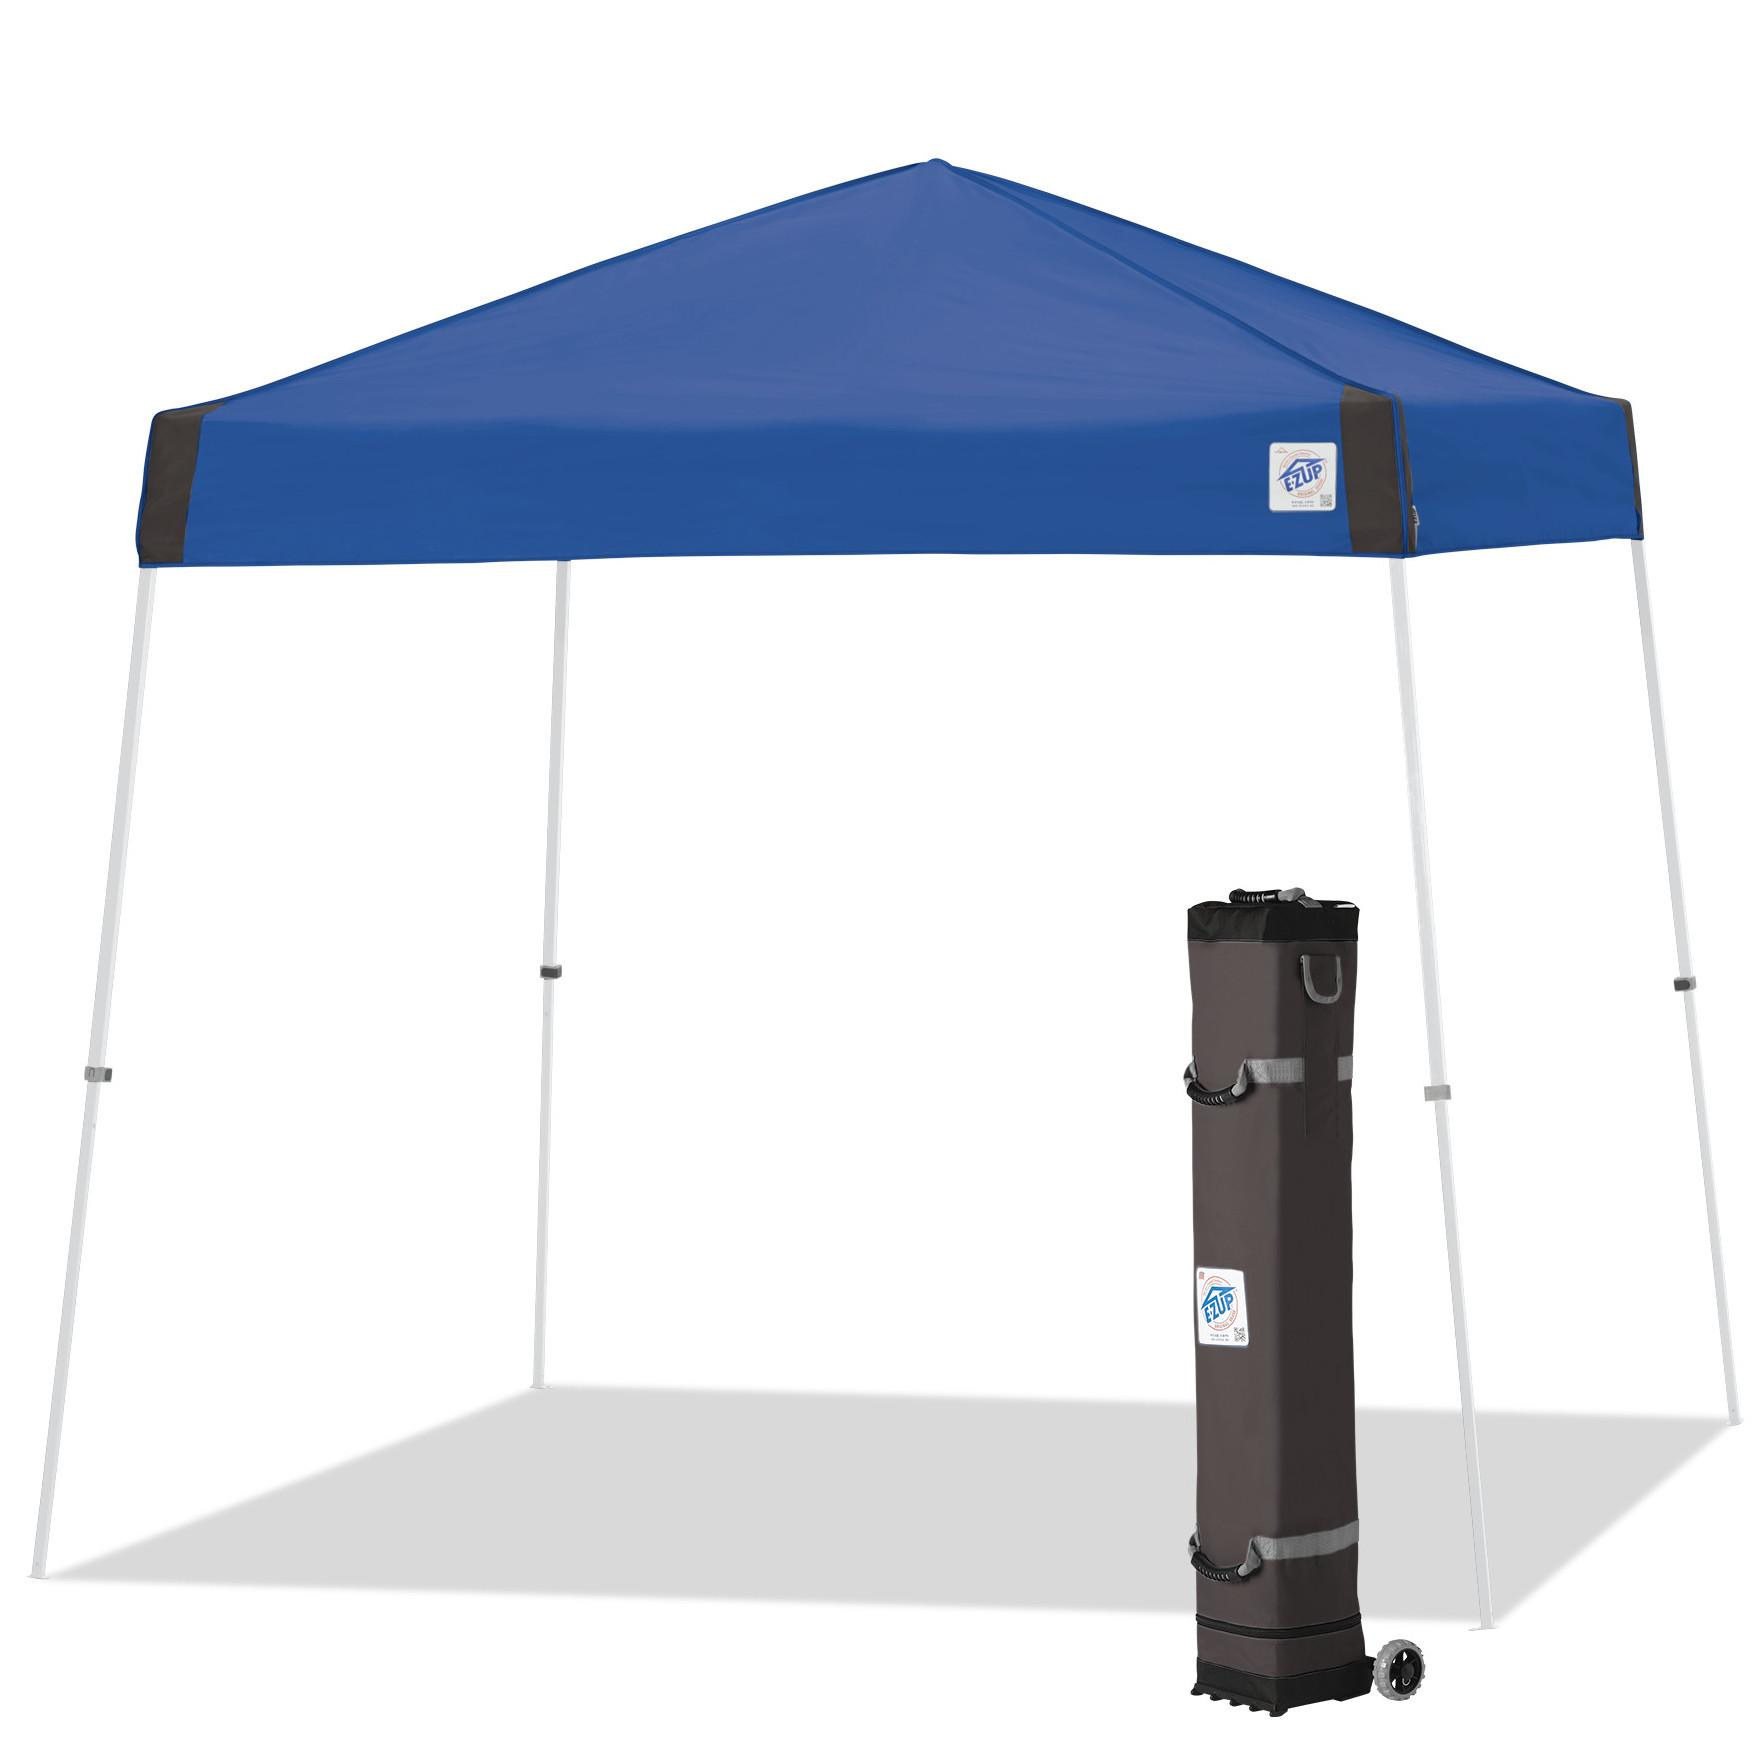 more appliances up electronics e awning beach tools shop your canopy earn on points escort way online x z spin prod shopping